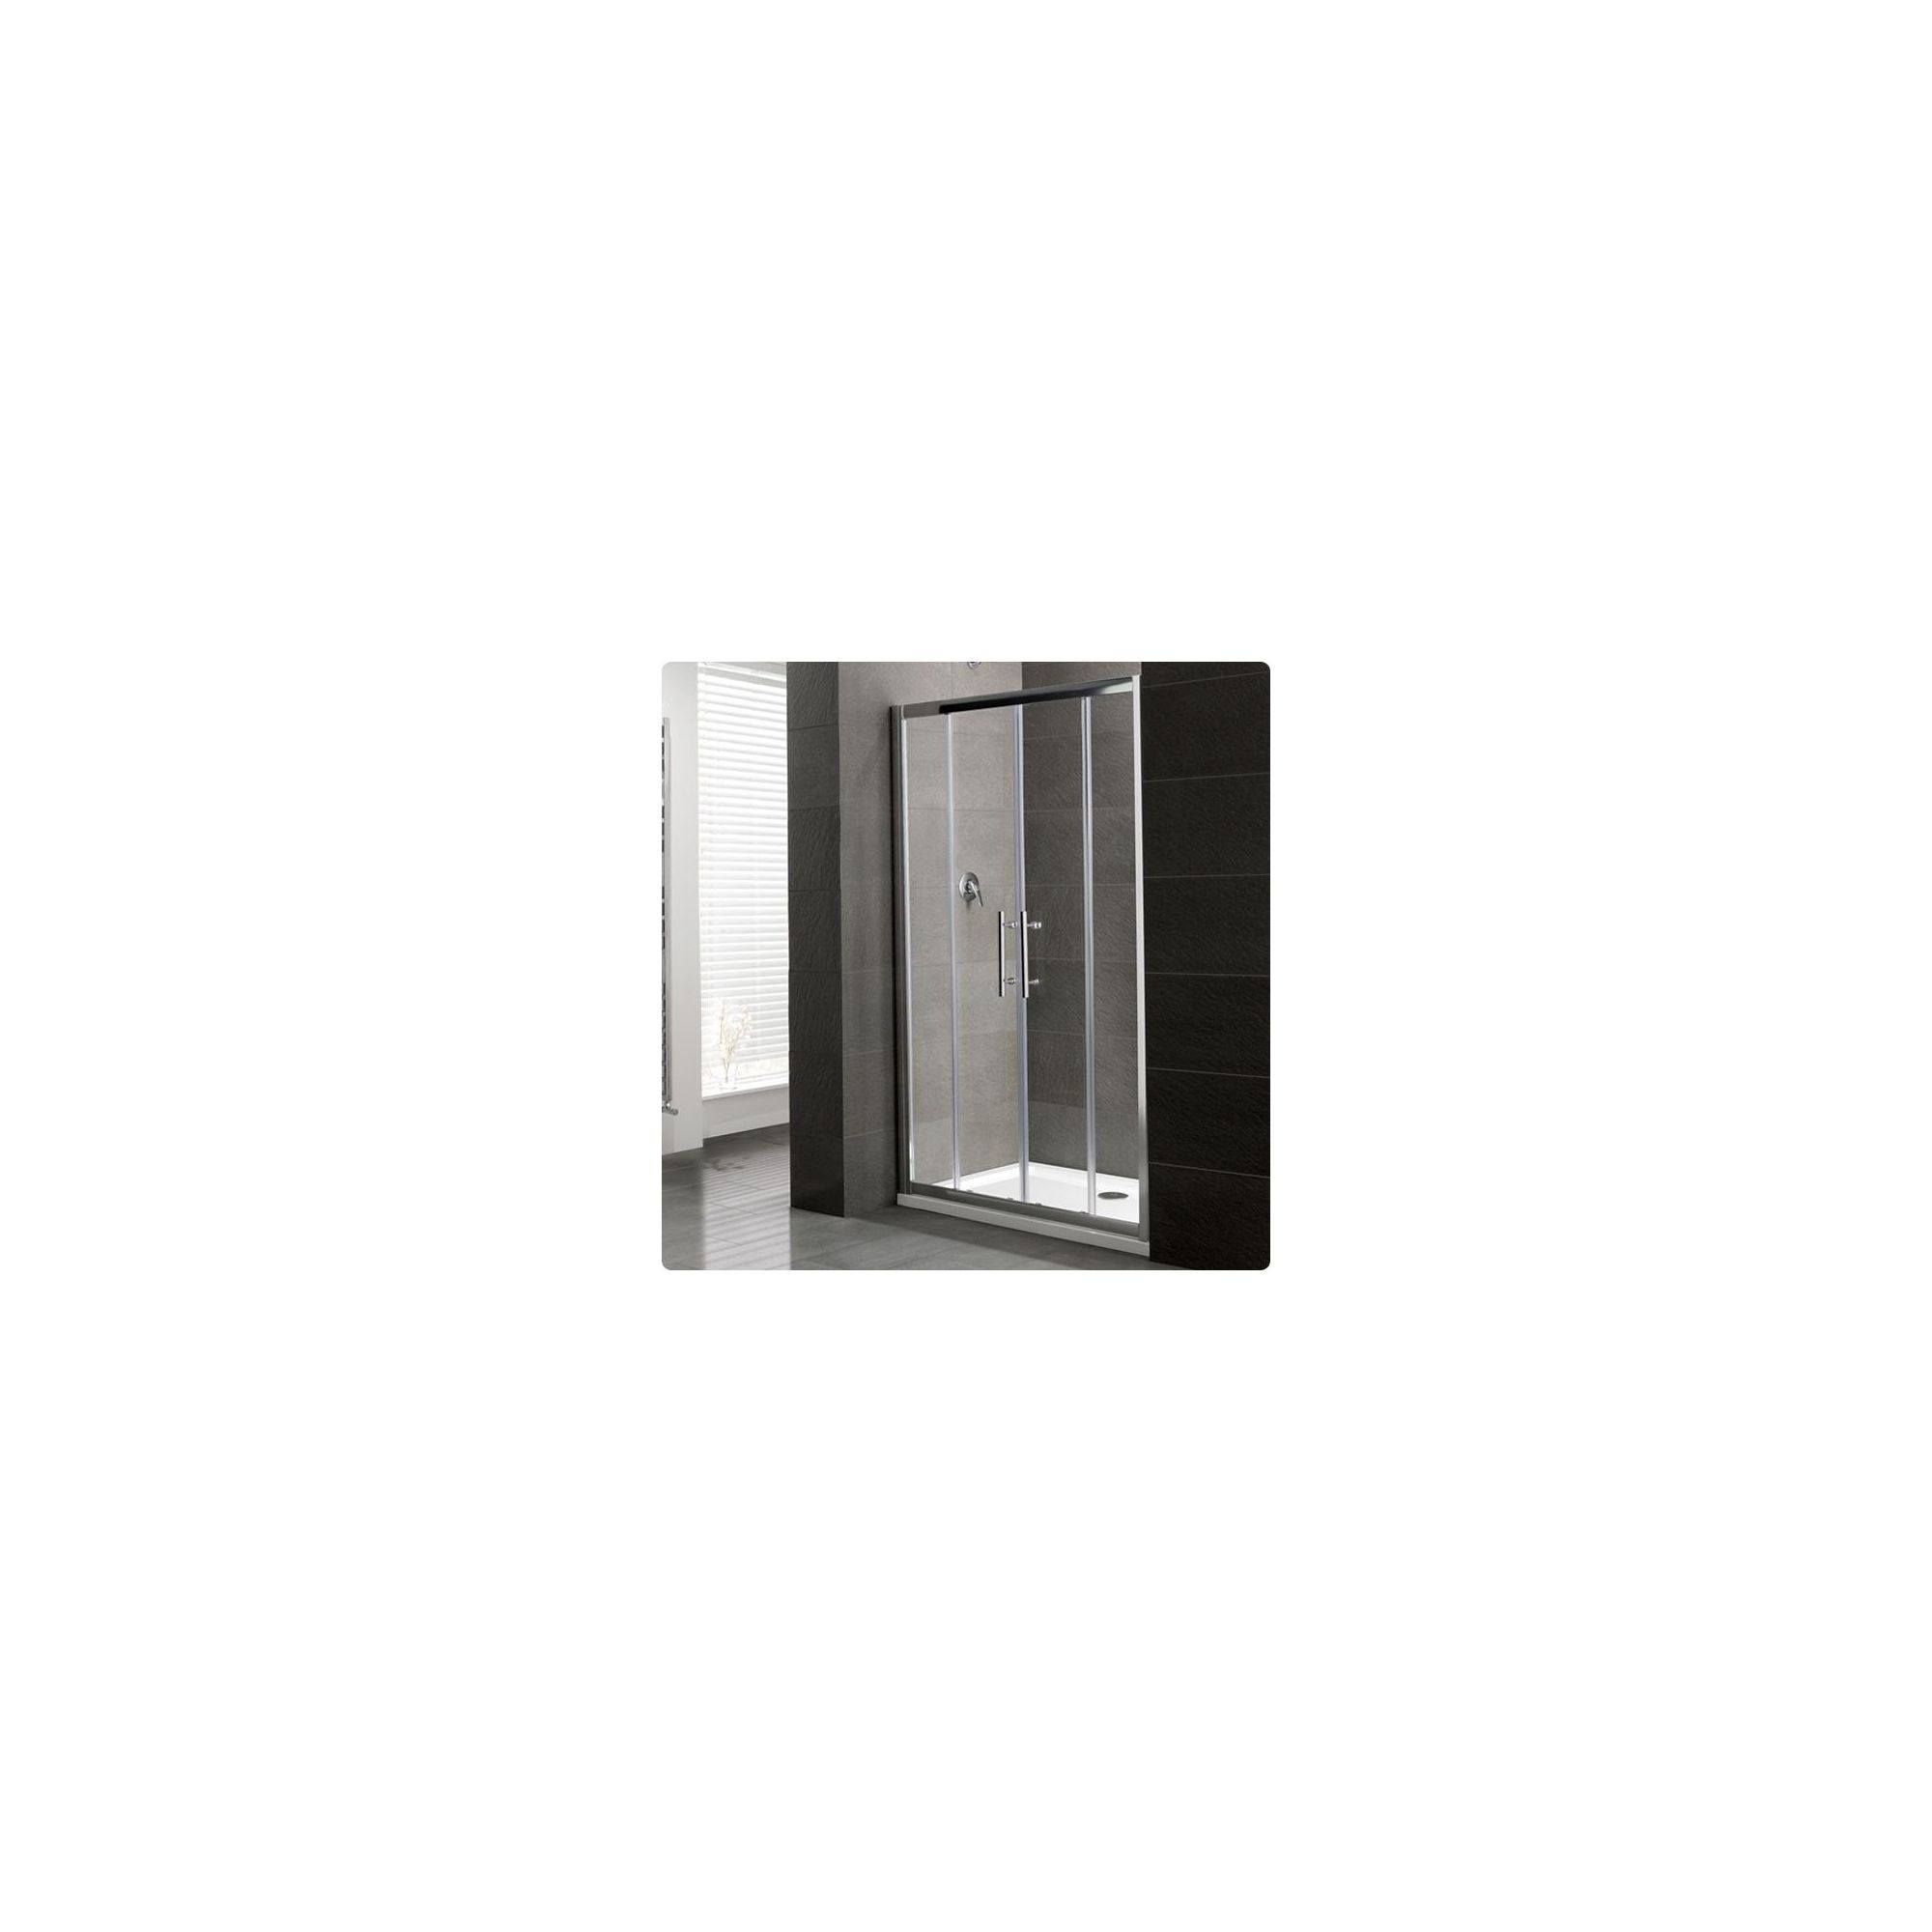 Duchy Select Silver Double Sliding Door Shower Enclosure, 1600mm x 700mm, Standard Tray, 6mm Glass at Tescos Direct